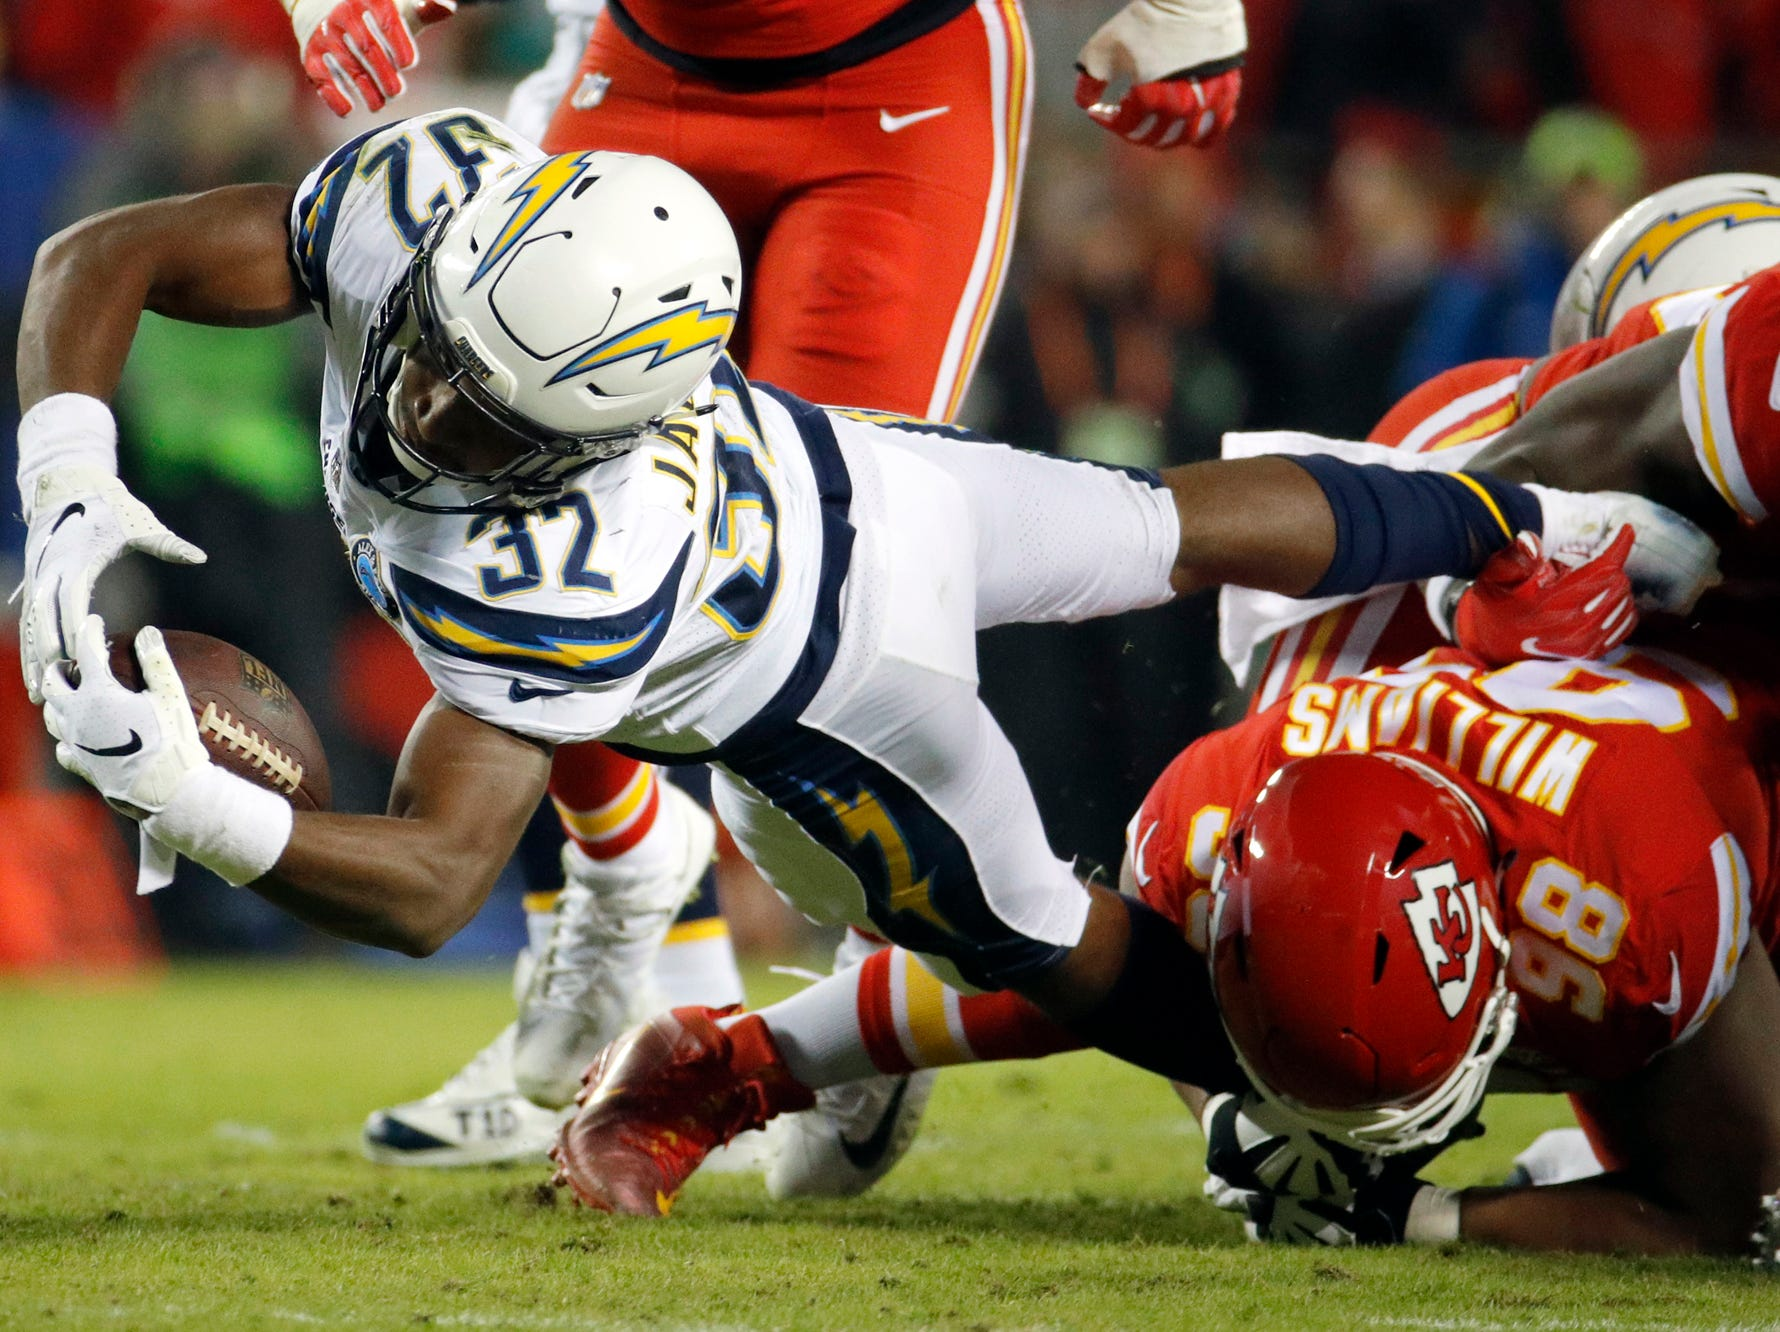 Los Angeles Chargers running back Justin Jackson (32) is tackled by Kansas City Chiefs tackle Xavier Williams (98) during the first half of an NFL football game in Kansas City, Mo., Thursday, Dec. 13, 2018. (AP Photo/Charlie Riedel)